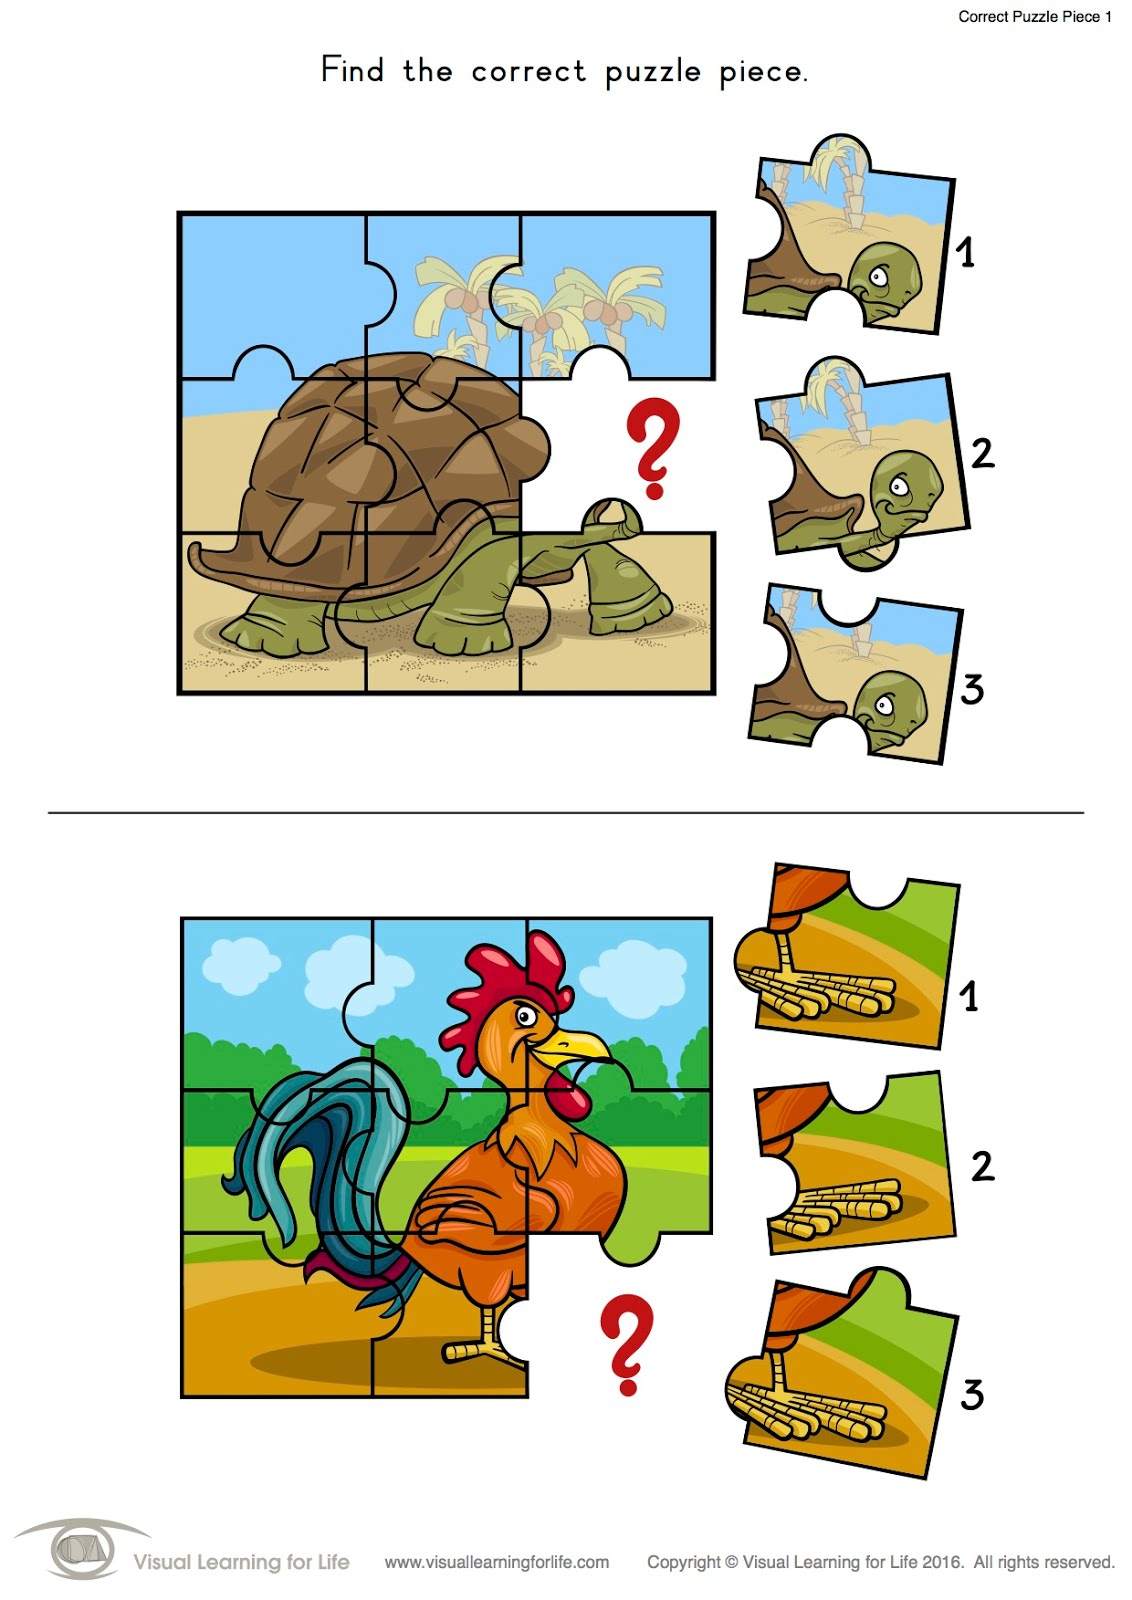 Visual Learning For Life Correct Puzzle Piece